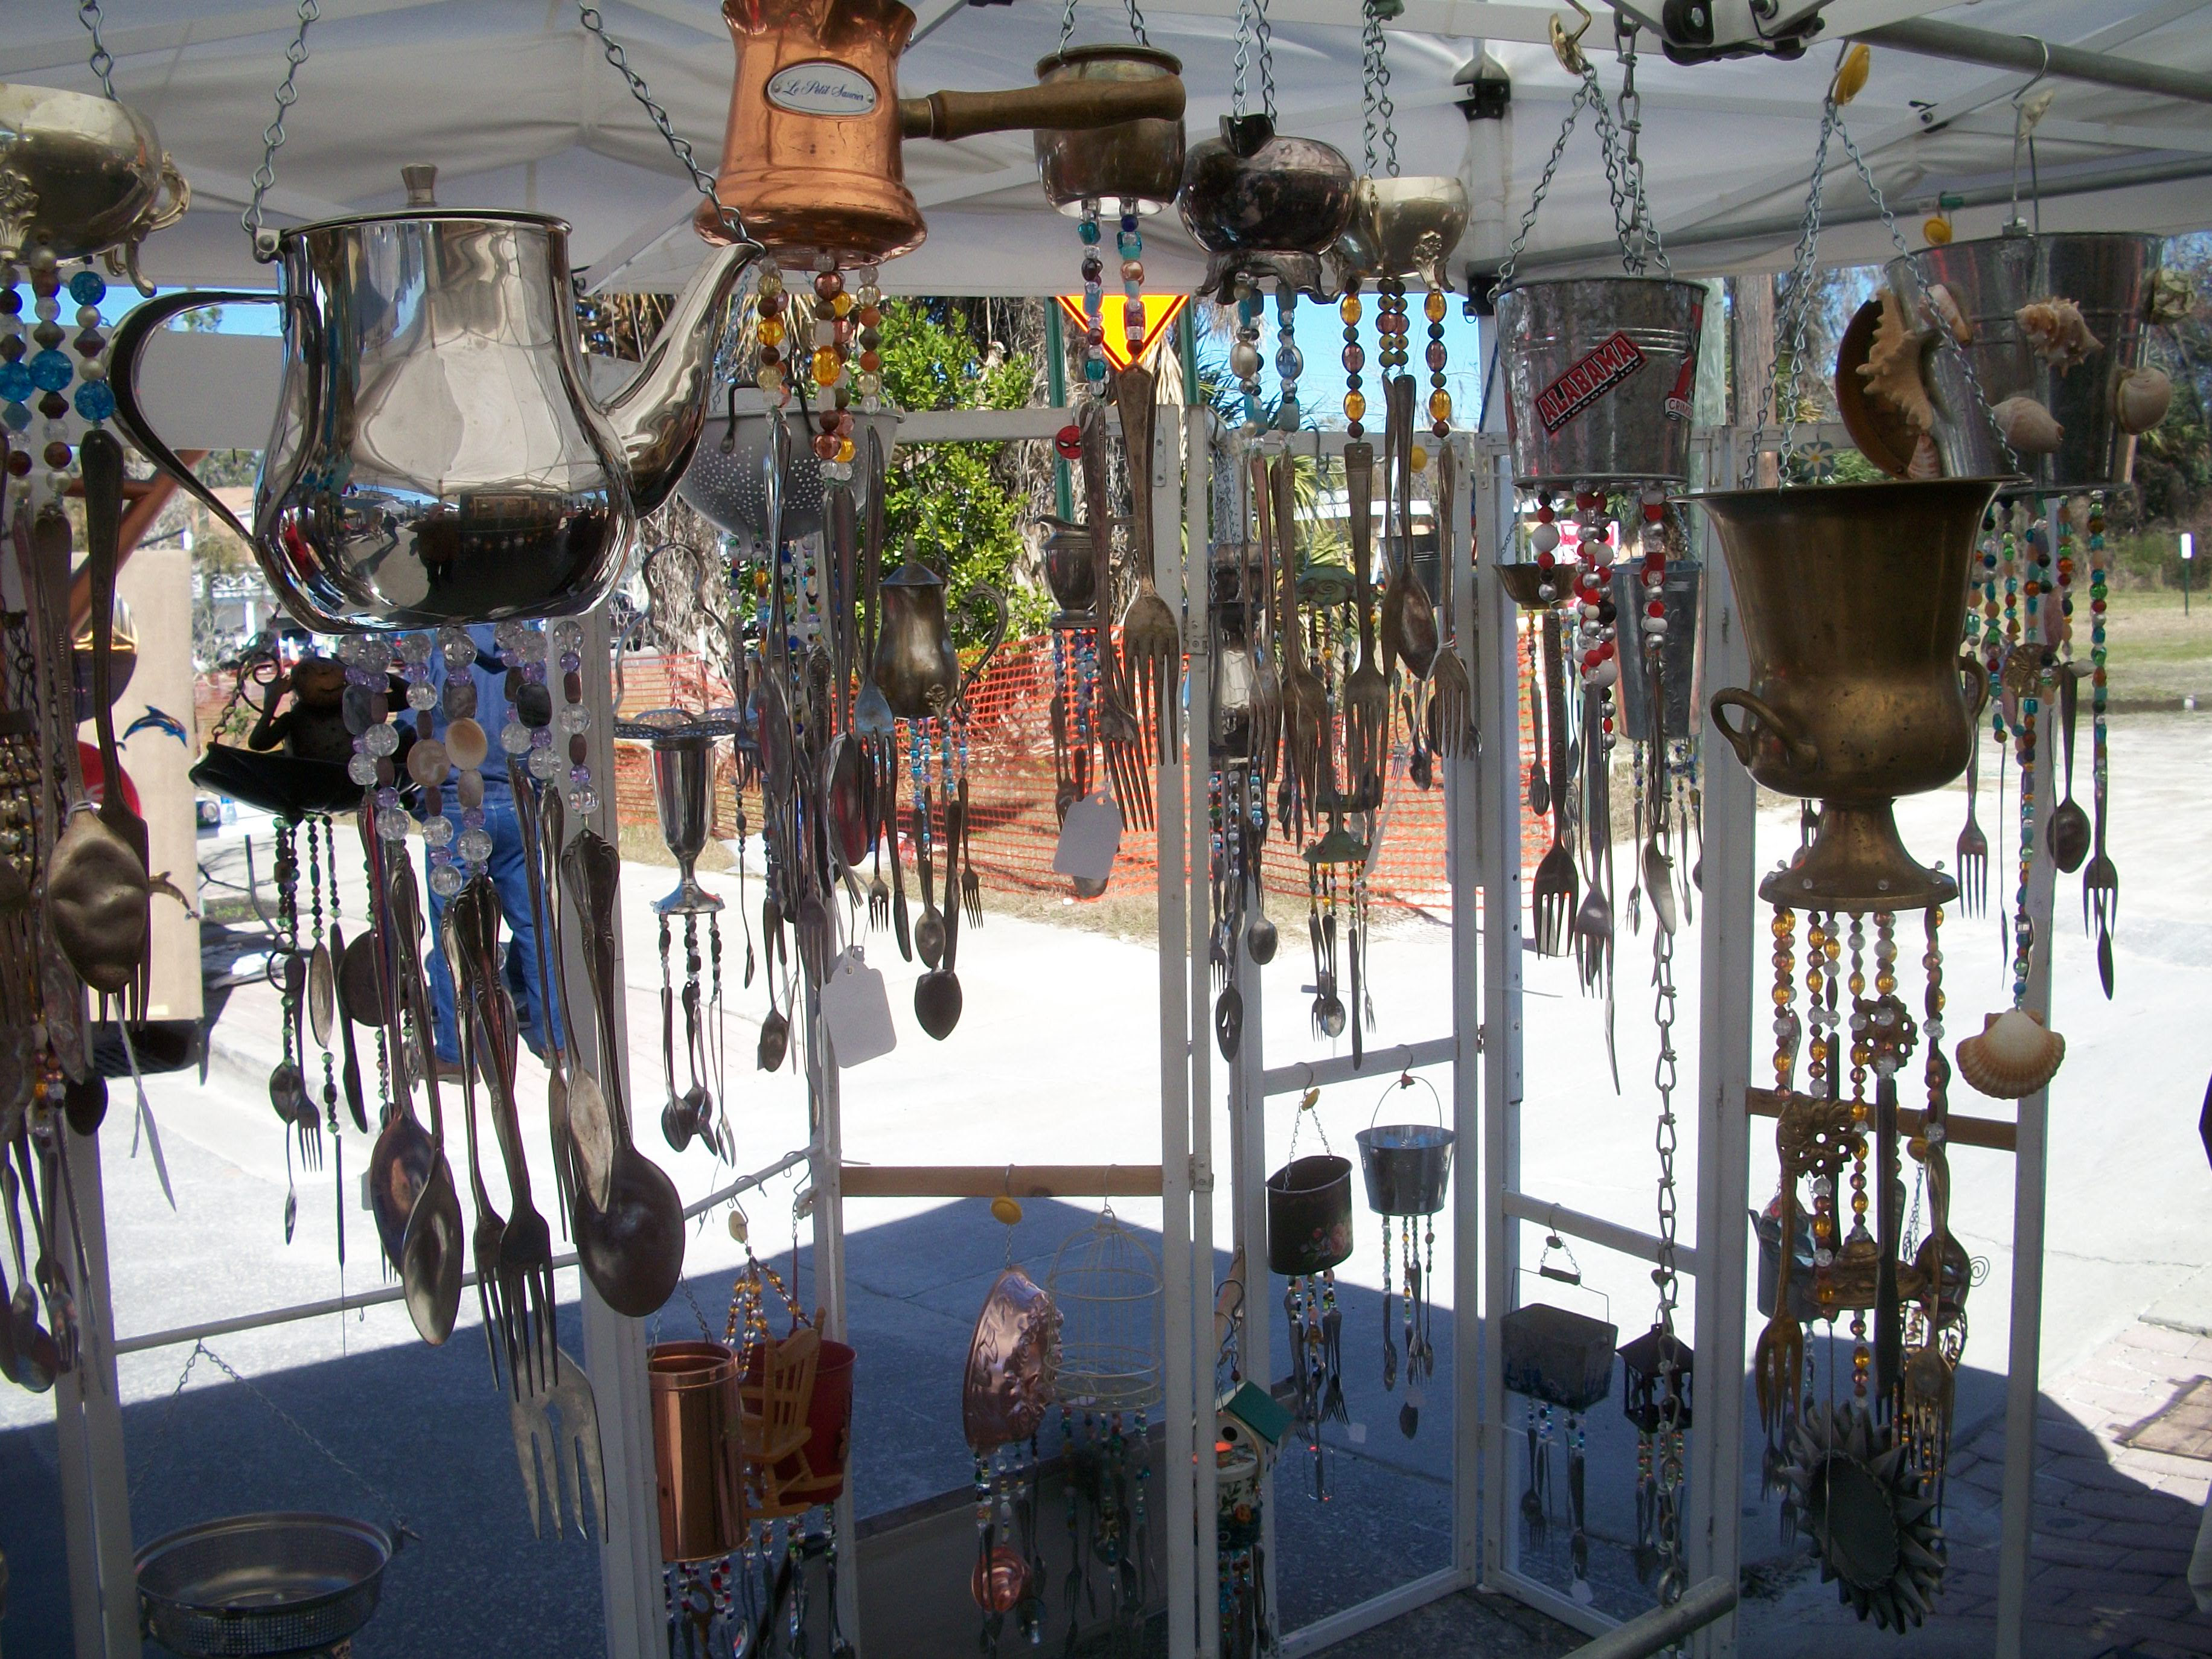 Best of Chimes: Windchimes and home decor made from recycled ...